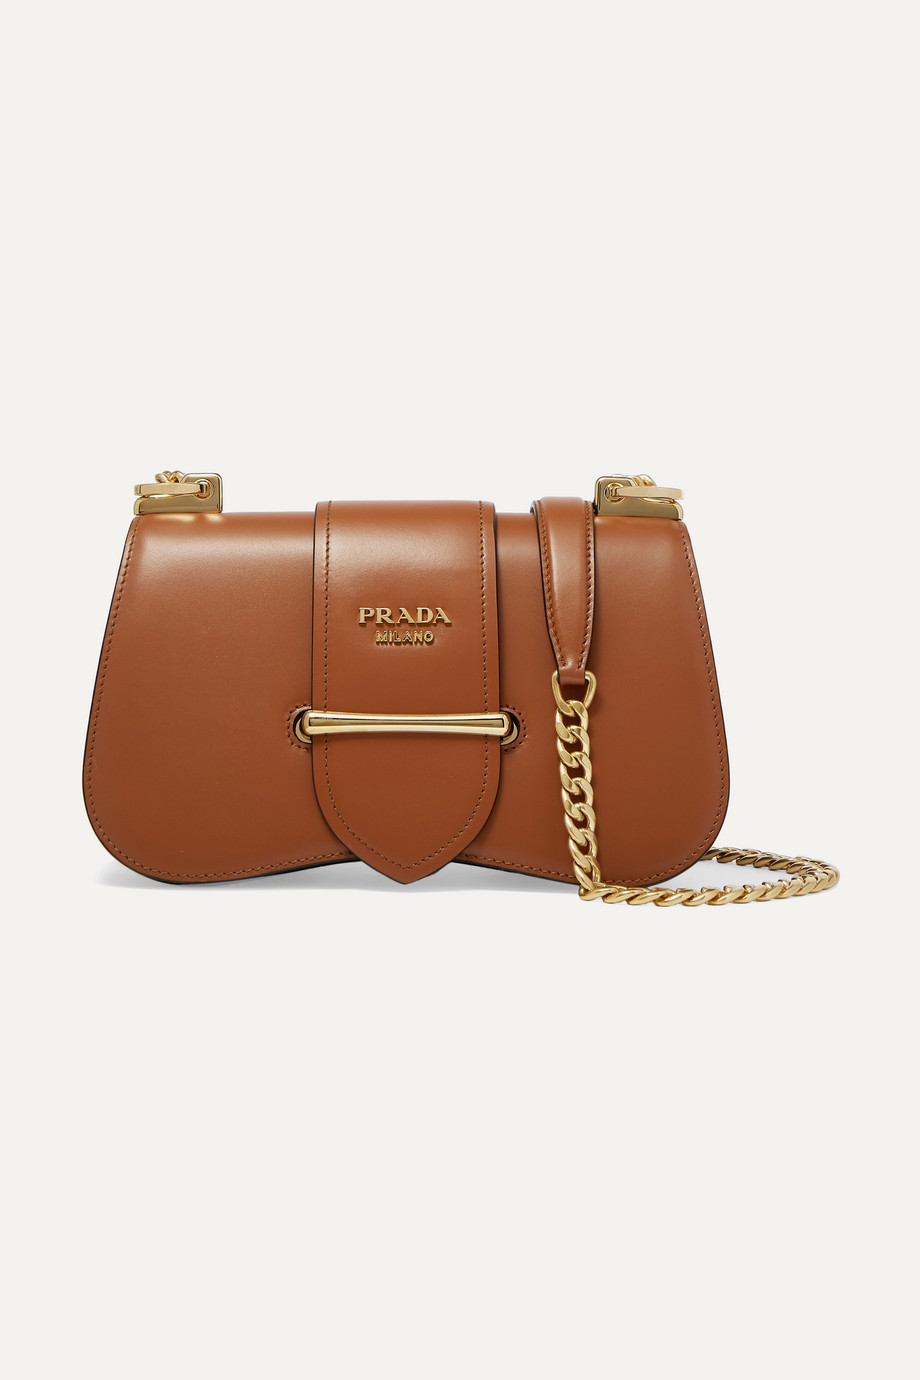 Prada Sidonie medium leather shoulder bag